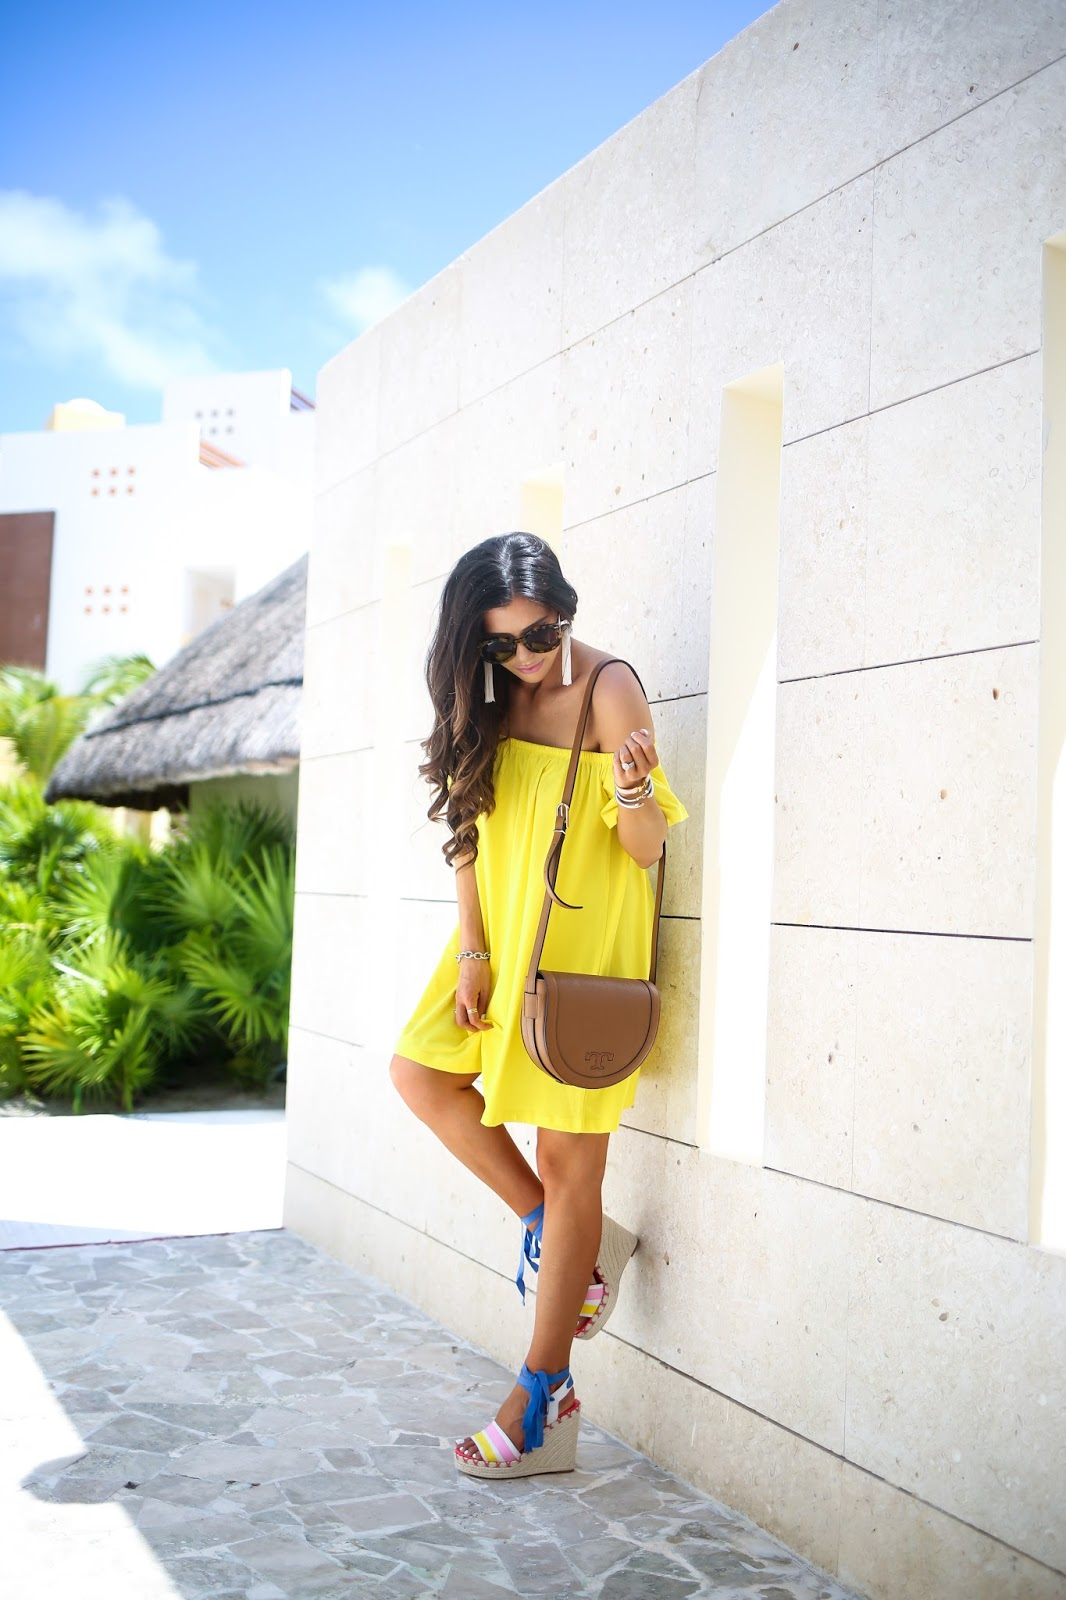 The sweetest Thing blog, emily gemma, ASOS off the shoulder dress, tory burch serif saddle bag, karen walker super duper tortoise, vanessa mooney white tassel earrings, kate spade danah wedges, brunette balayage medium layers, excellence playa mujeres cancun,yellow off the should dress, pinterest vacation beach outfit ideas, summer fashion pinterest, david yurman bracelet stack, white hermes bracelets